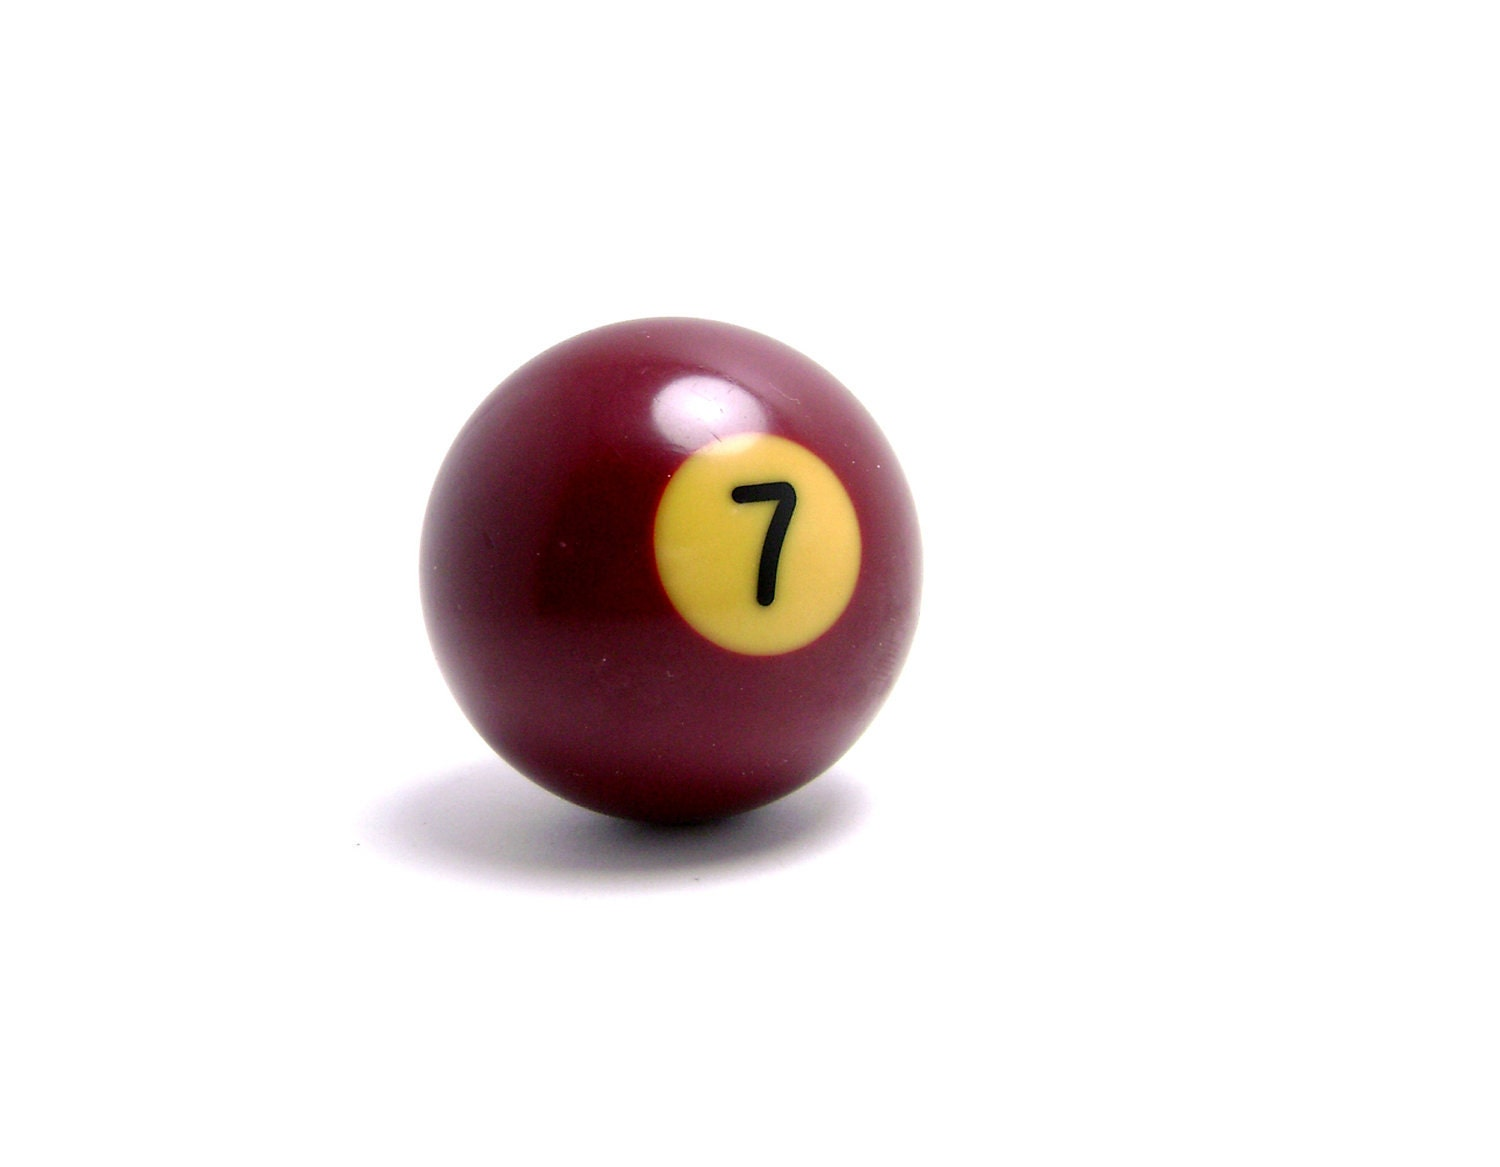 Number 7 Pool Ball Snooker Wine Red Burgundy